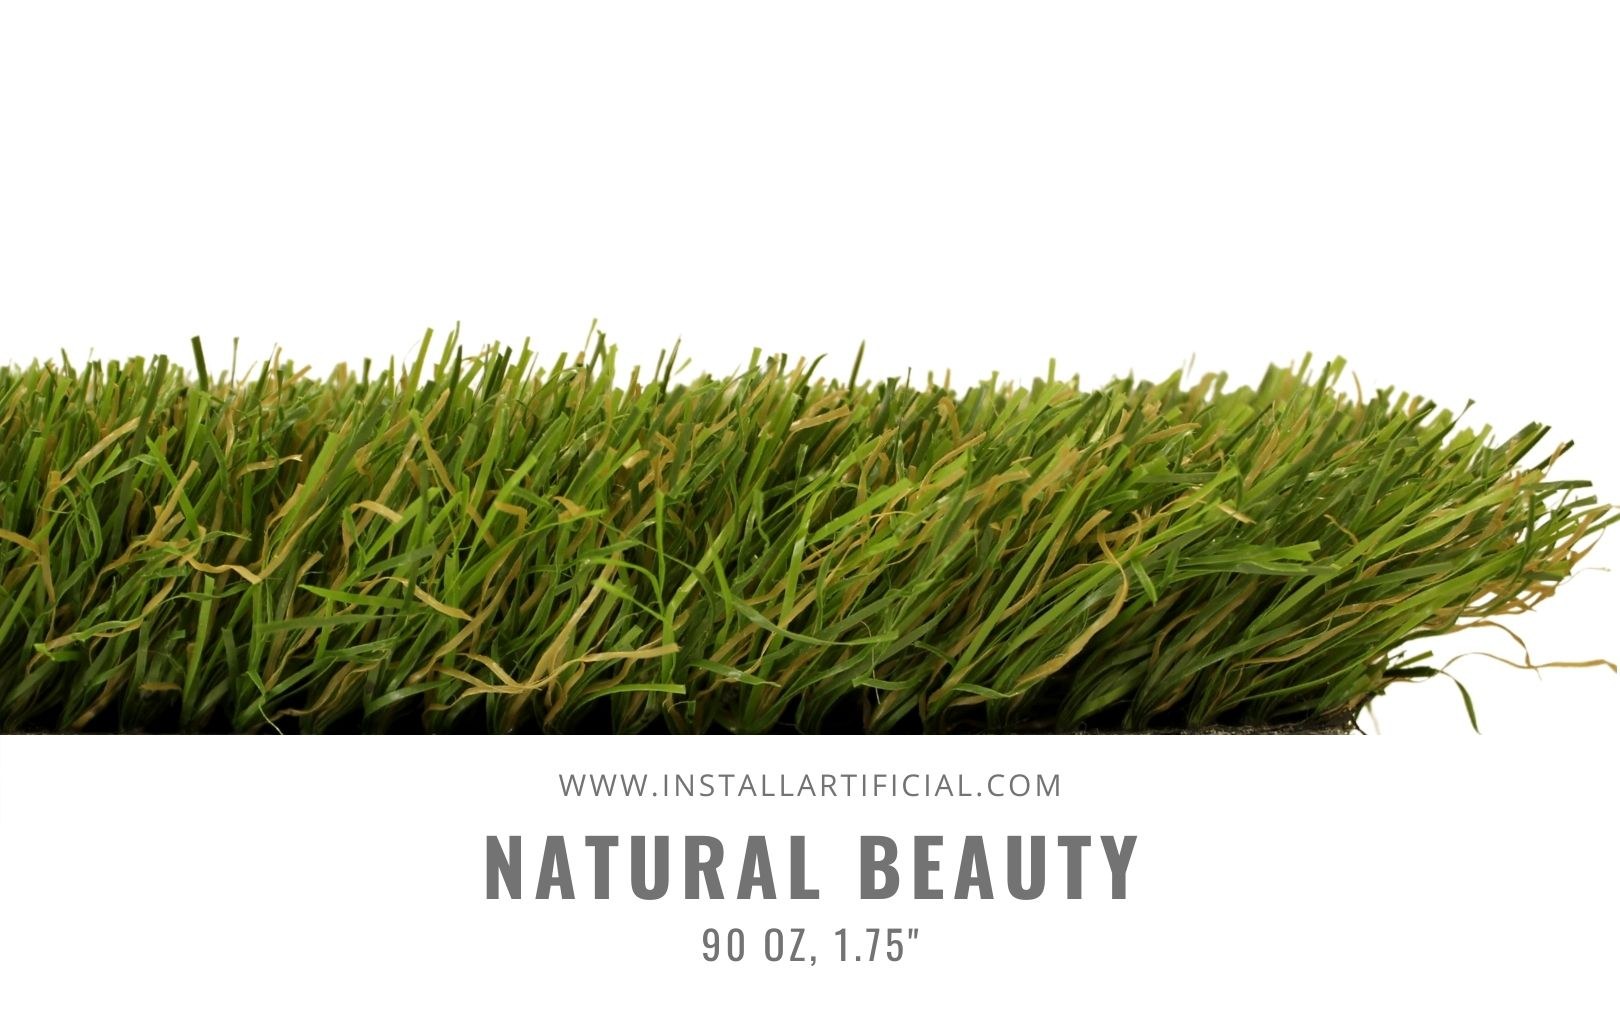 Natural Beauty, side image